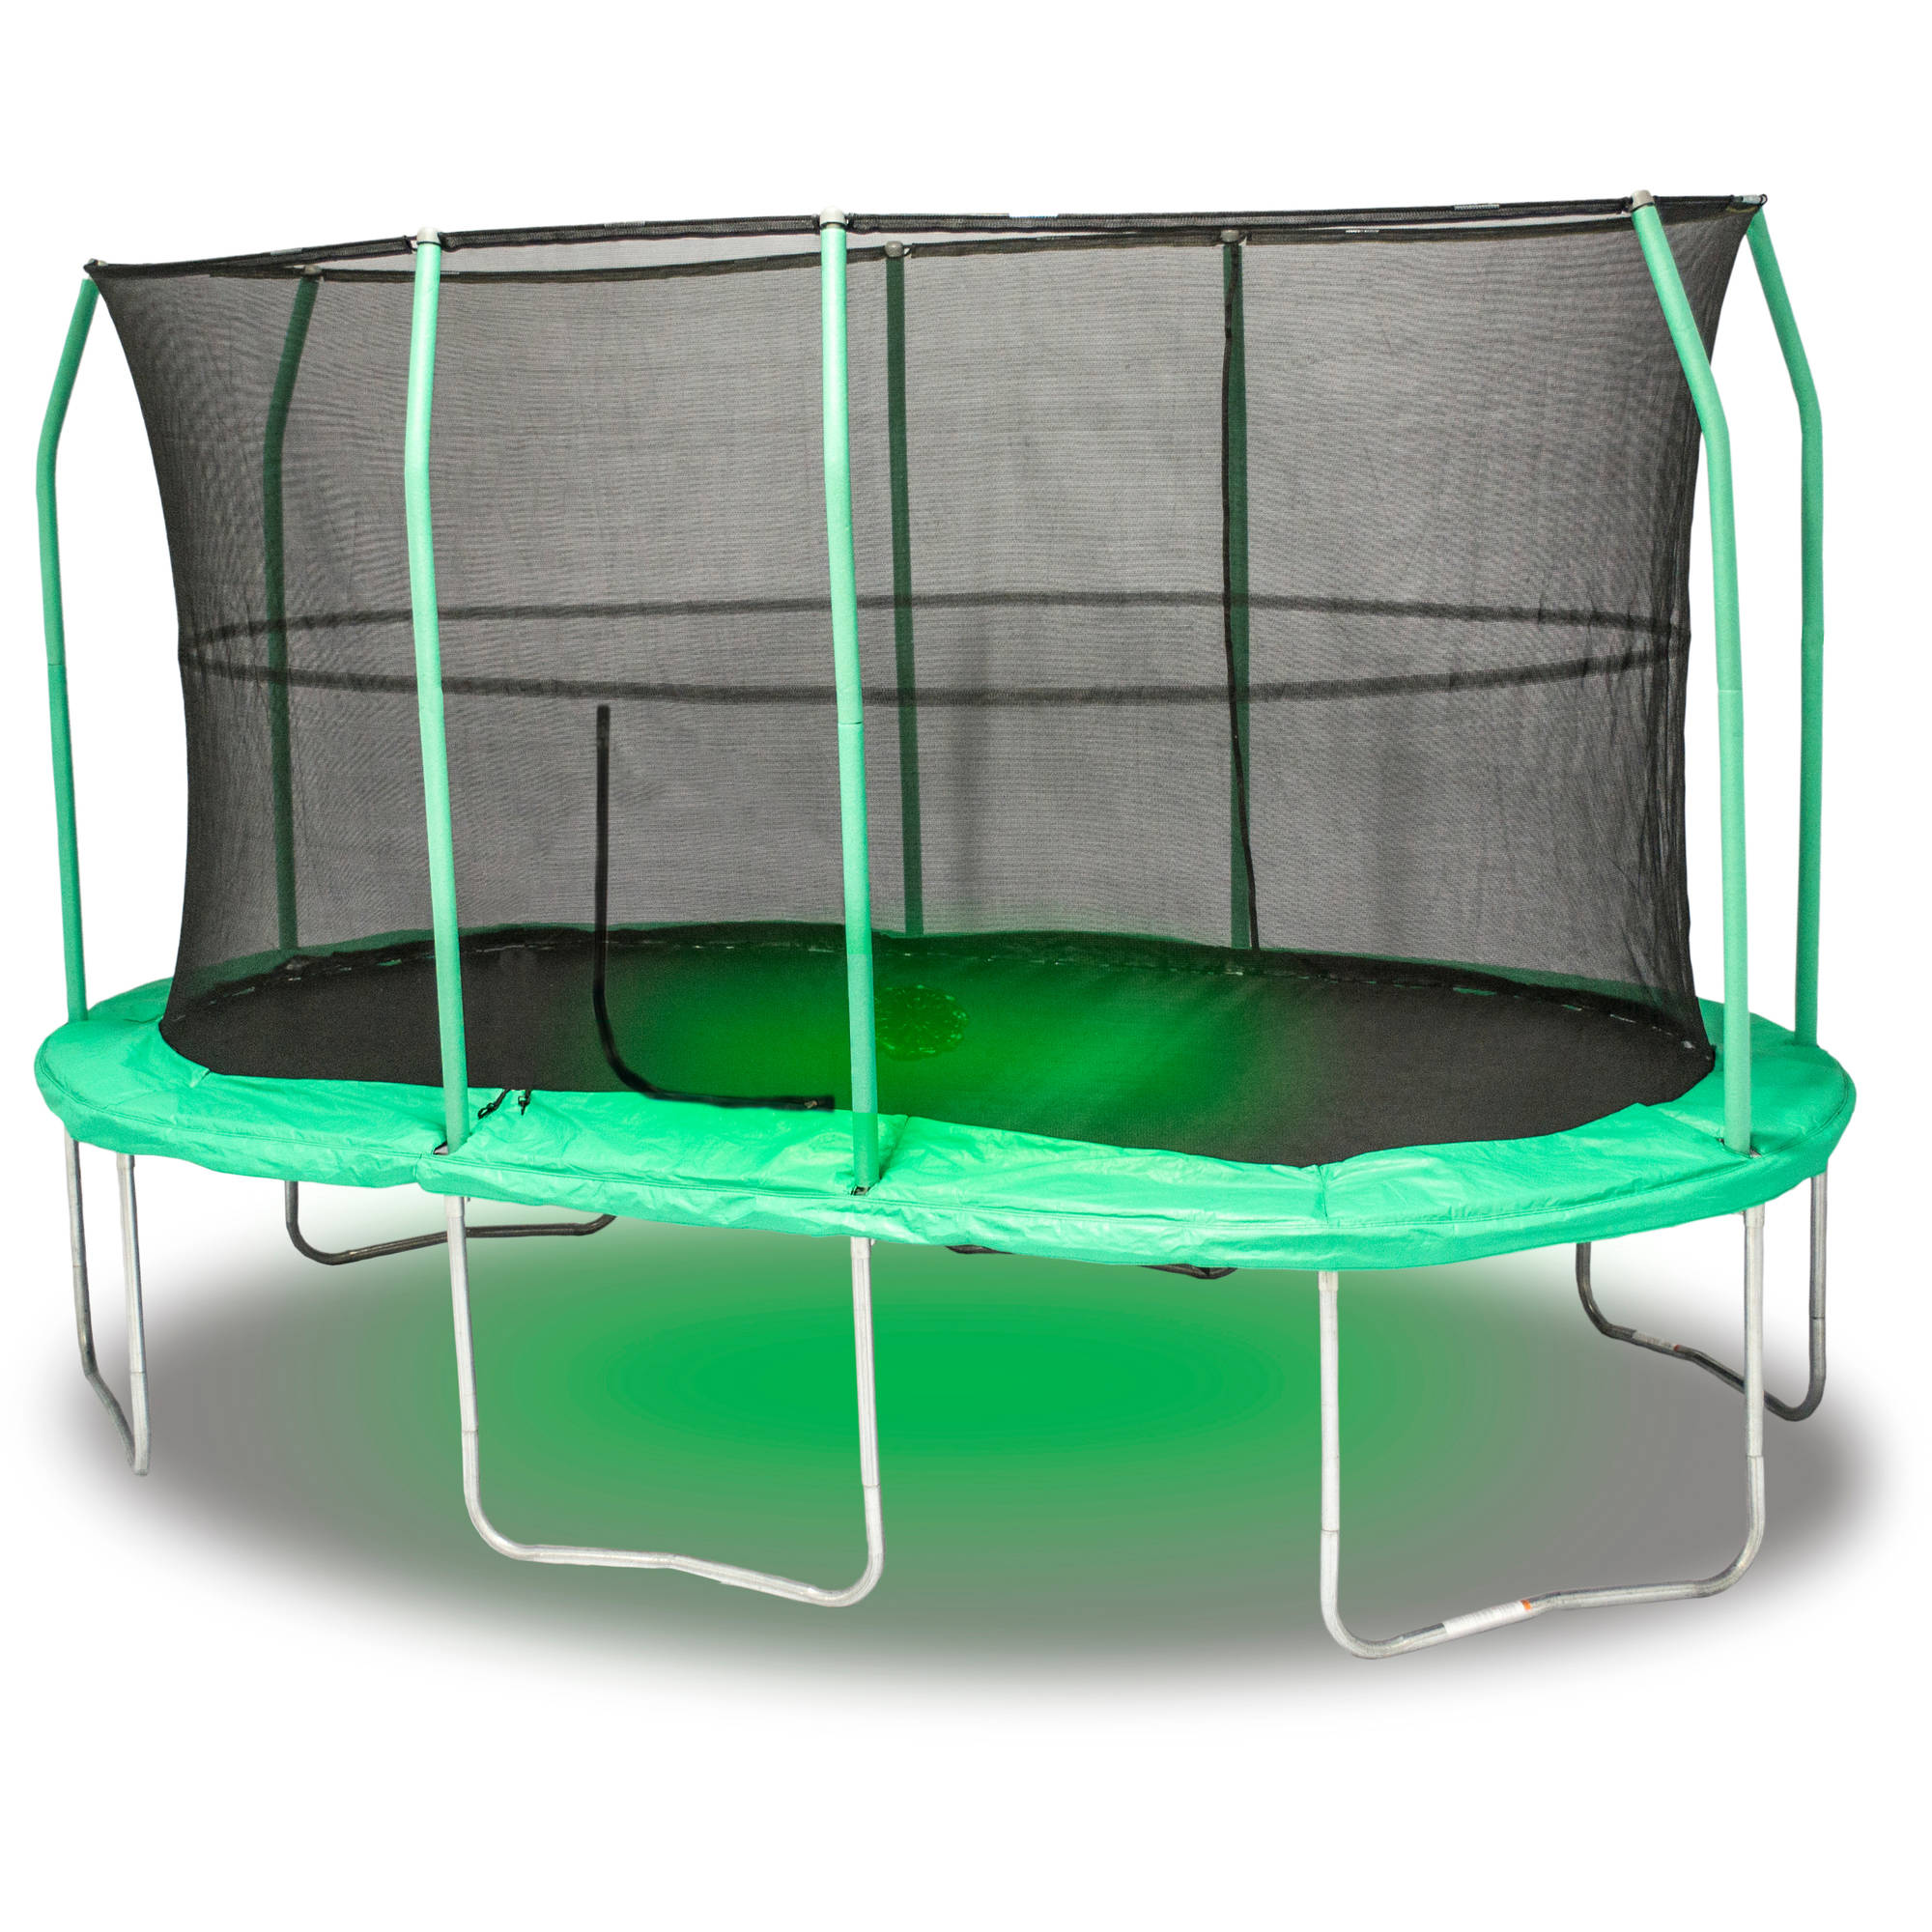 JumpKing Oval 9 x 14 Foot Trampoline, with Sound and Light, Green